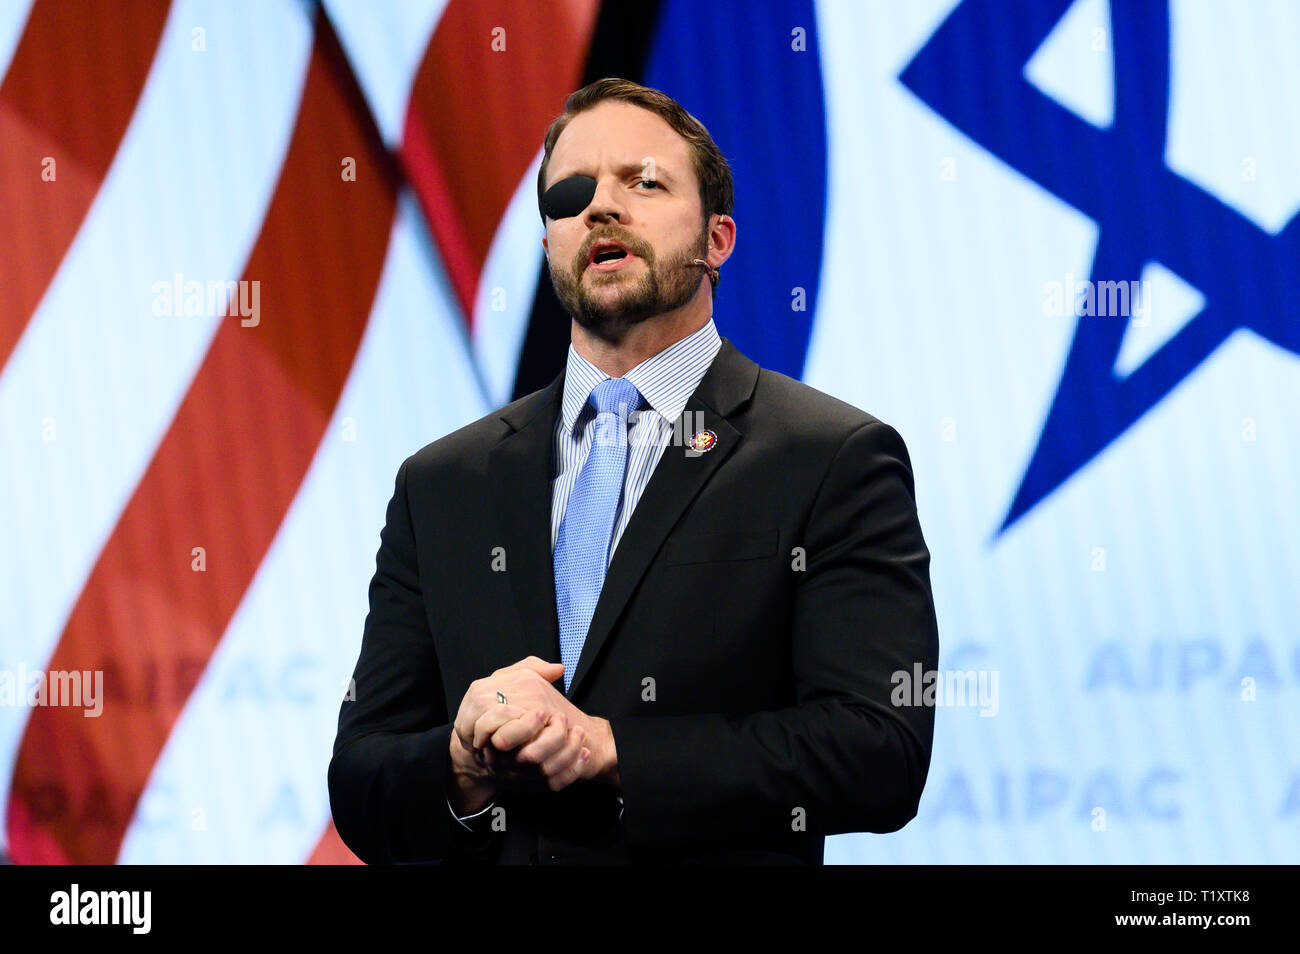 U.S. Representative Dan Crenshaw (R-TX) seen speaking during the American Israel Public Affairs Committee (AIPAC) Policy Conference in Washington, DC. - Stock Image